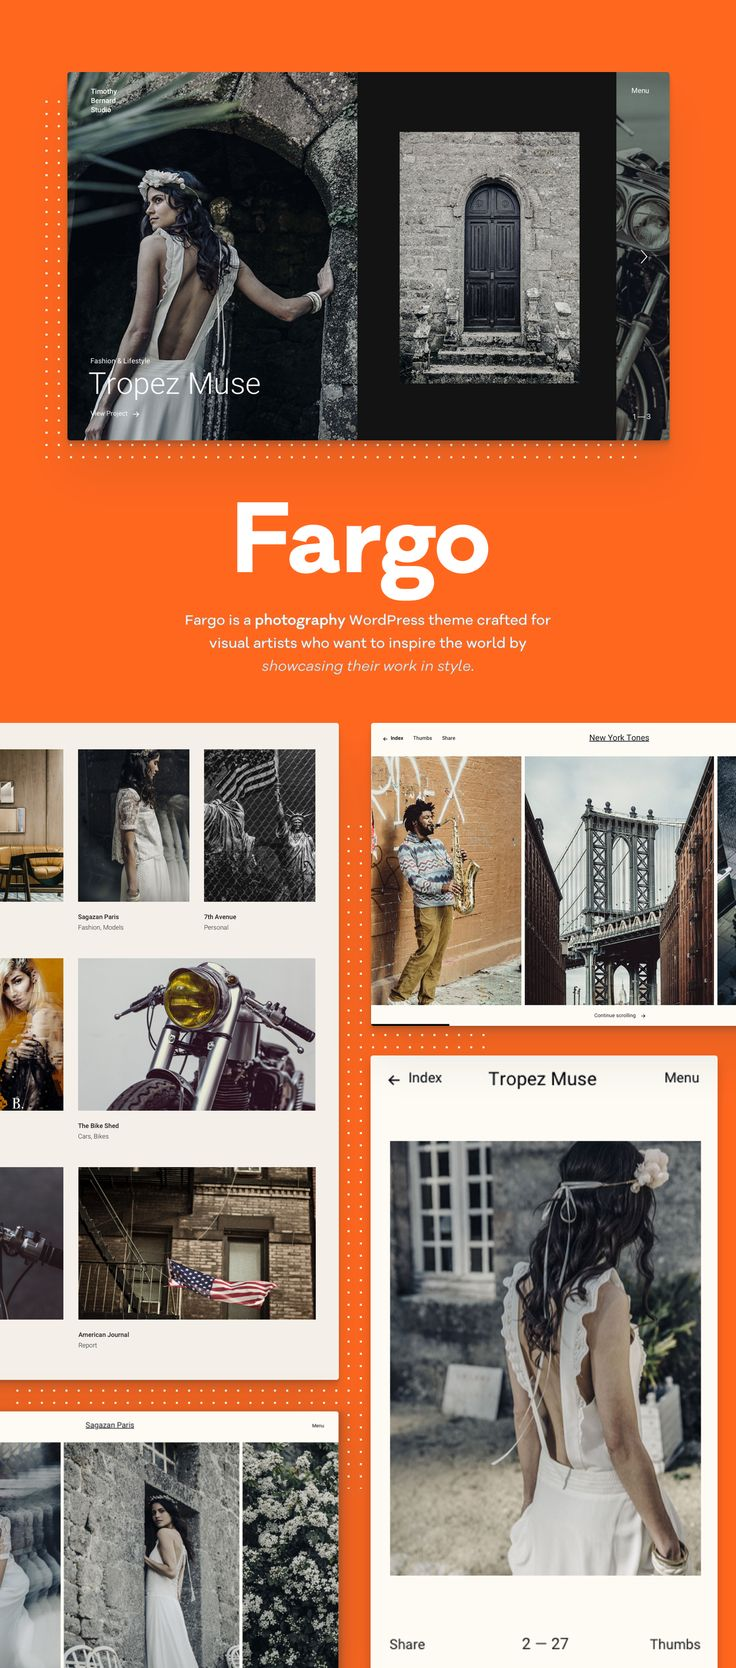 From landscape to portraits, from inserting videos to creating a striking journal, Fargo offers you the full pack of perks. This way, you can shape an engaging experience that people love and remember in the long run.  #photography #slideshow #filmstrip #portofolio #comingsoon #webdesign #pixelgrade #wordpressthemes #wordpress #portfoliotheme